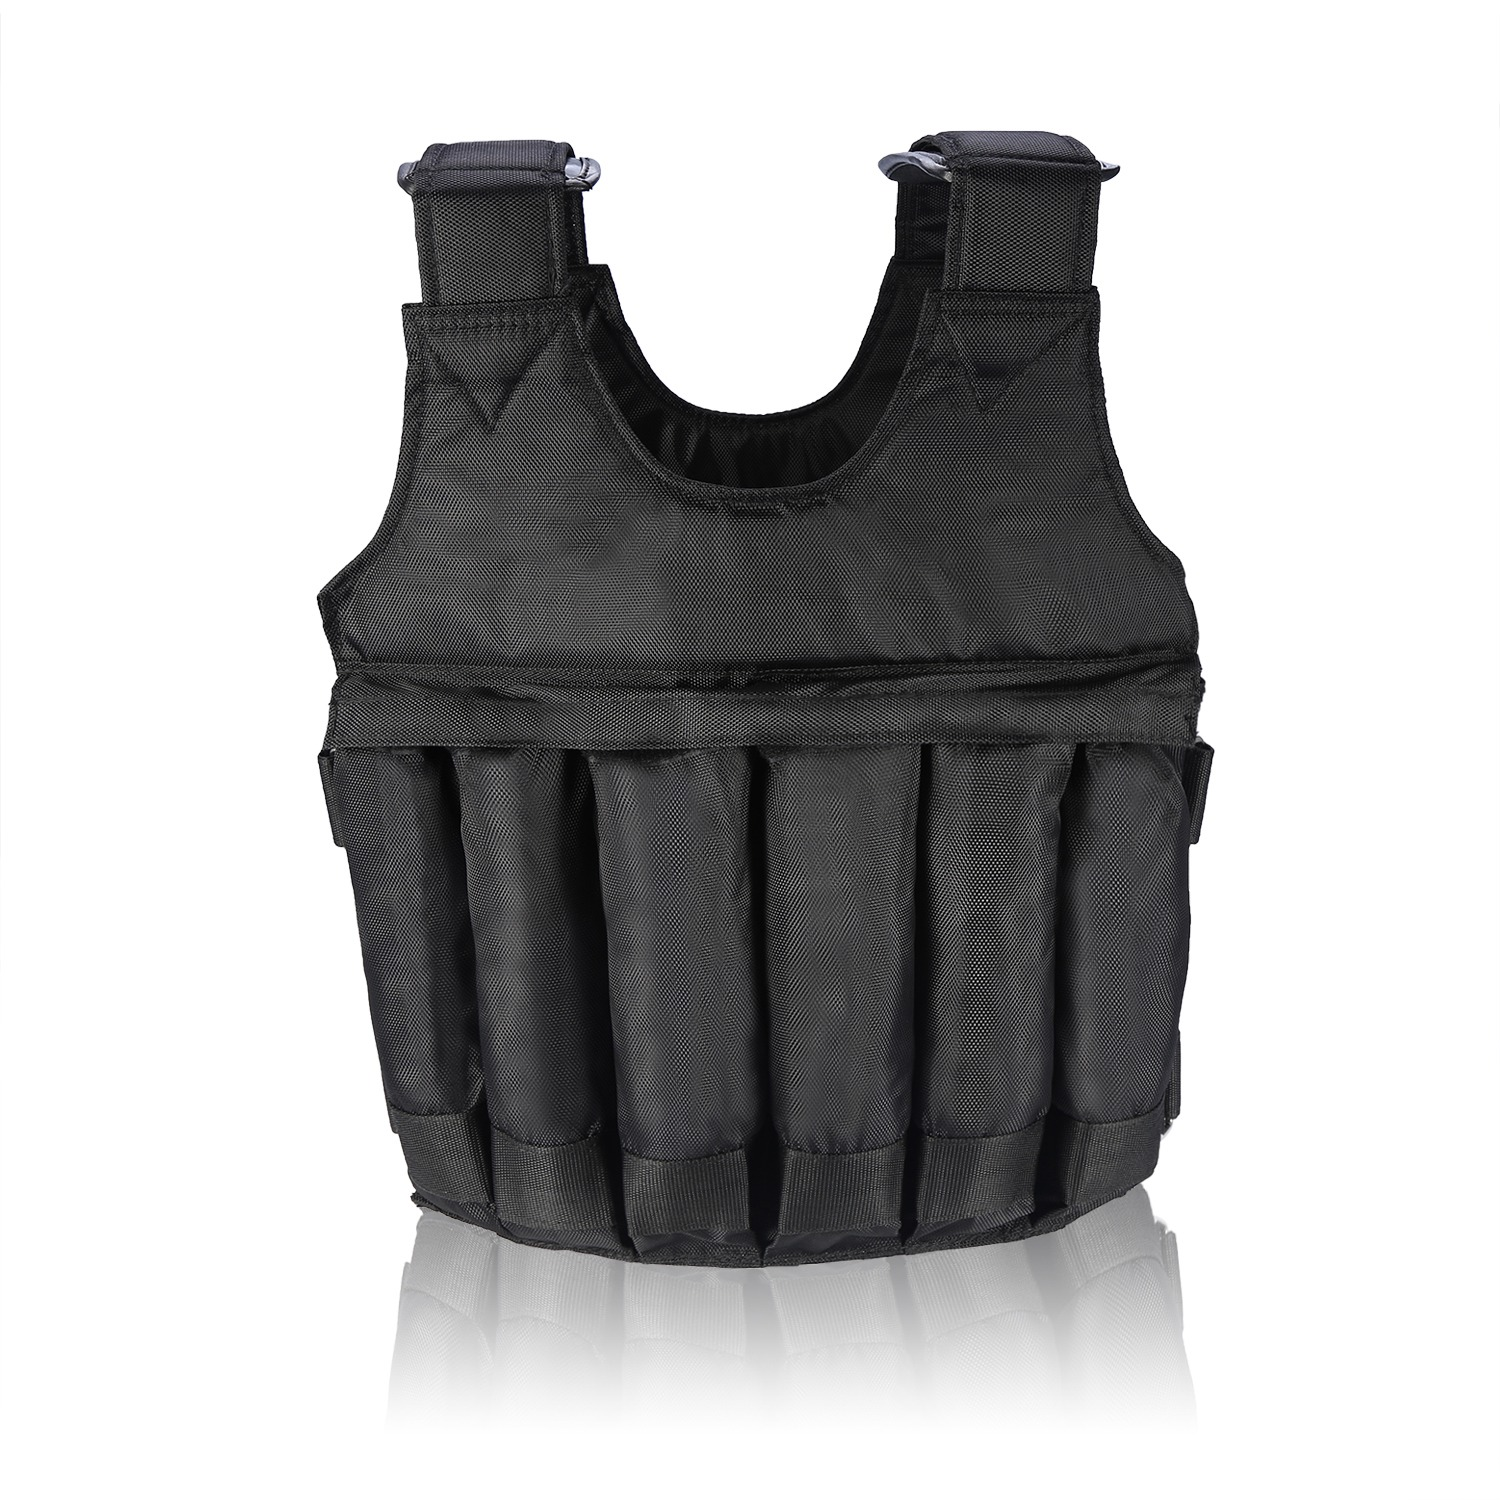 Weighted-Vest-44-110lbs-Weight-Workout-Exercise-Body-Training-Crossfit-Equipment thumbnail 13